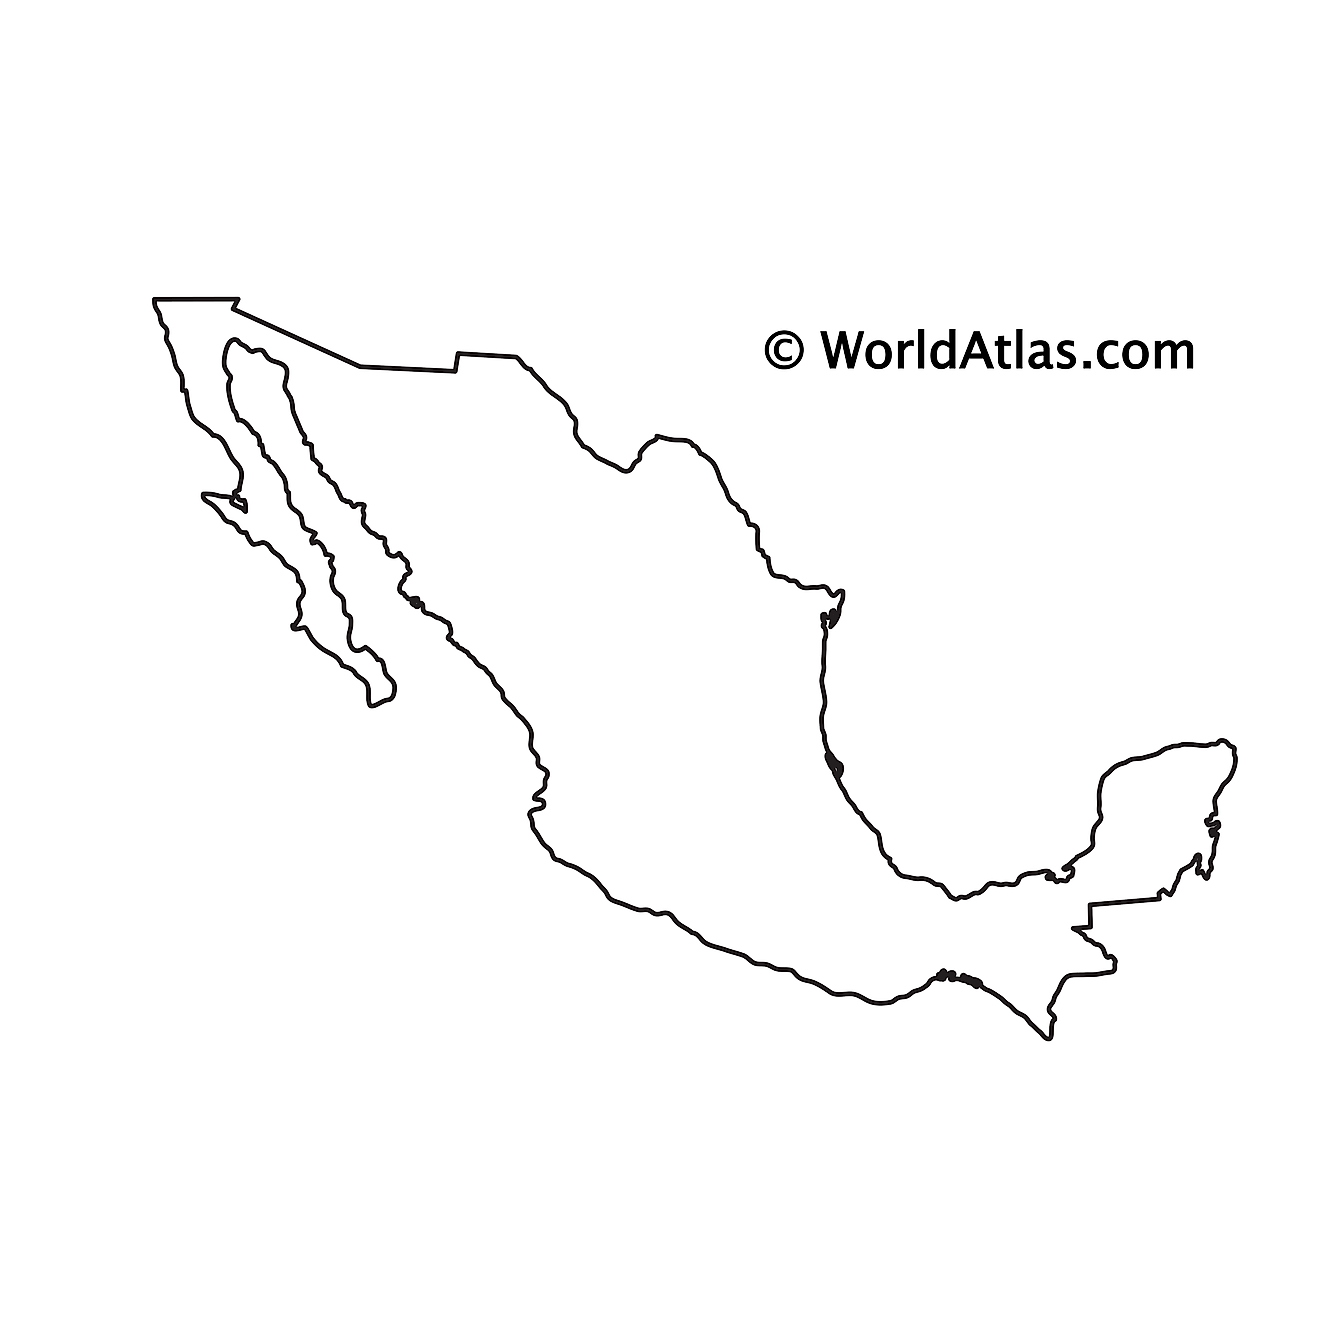 Blank Outline Map of Mexico